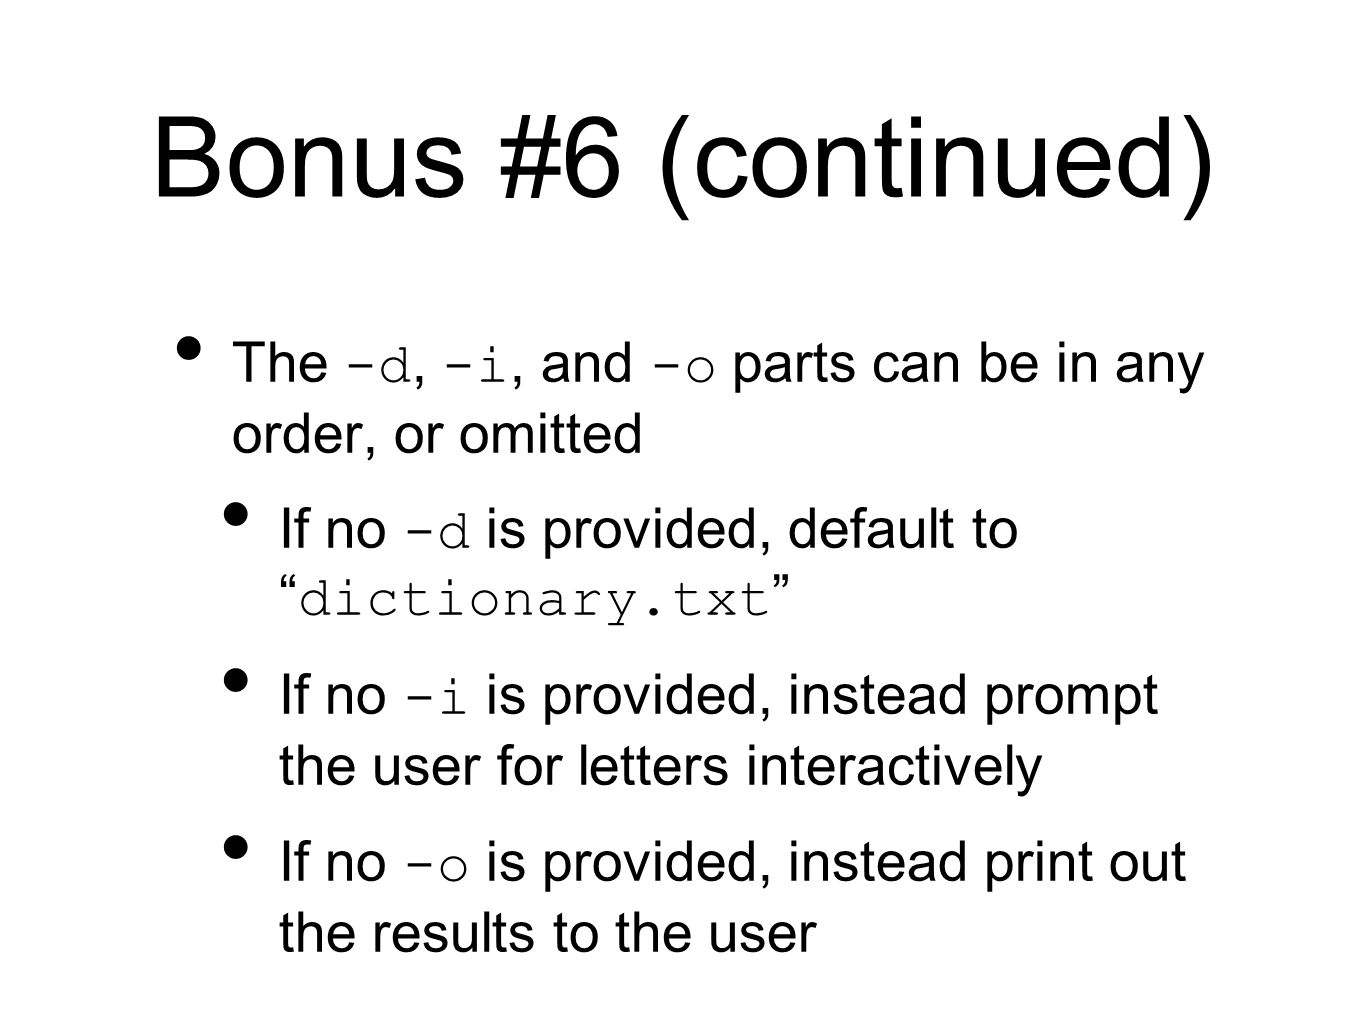 Bonus #6 (continued) The -d, -i, and -o parts can be in any order, or omitted If no -d is provided, default to dictionary.txt If no -i is provided, instead prompt the user for letters interactively If no -o is provided, instead print out the results to the user